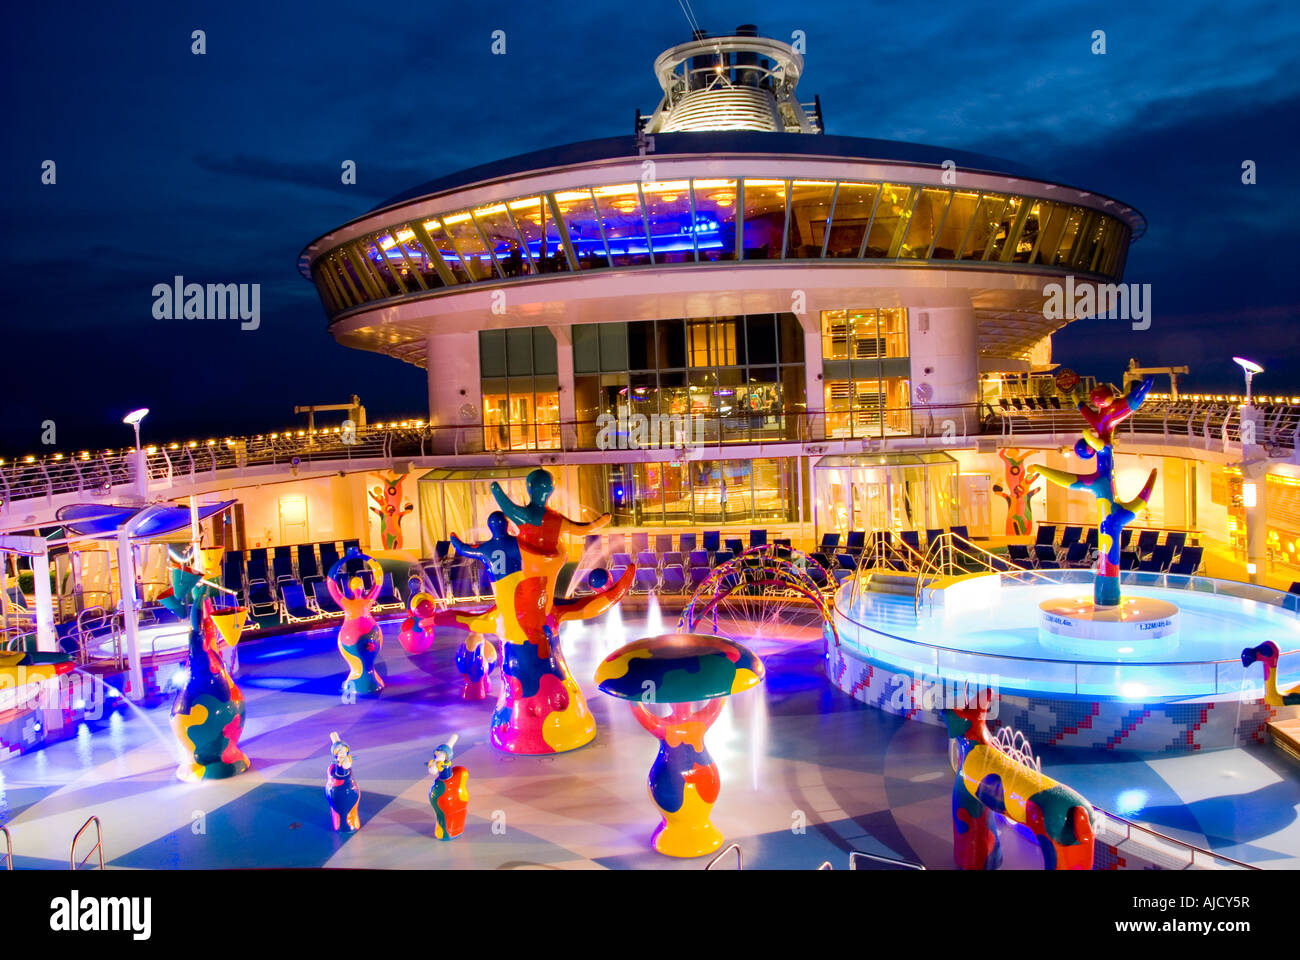 Liberty Of The Seas Largest Cruise Ship In The World Stock Photo - Liberty of seas